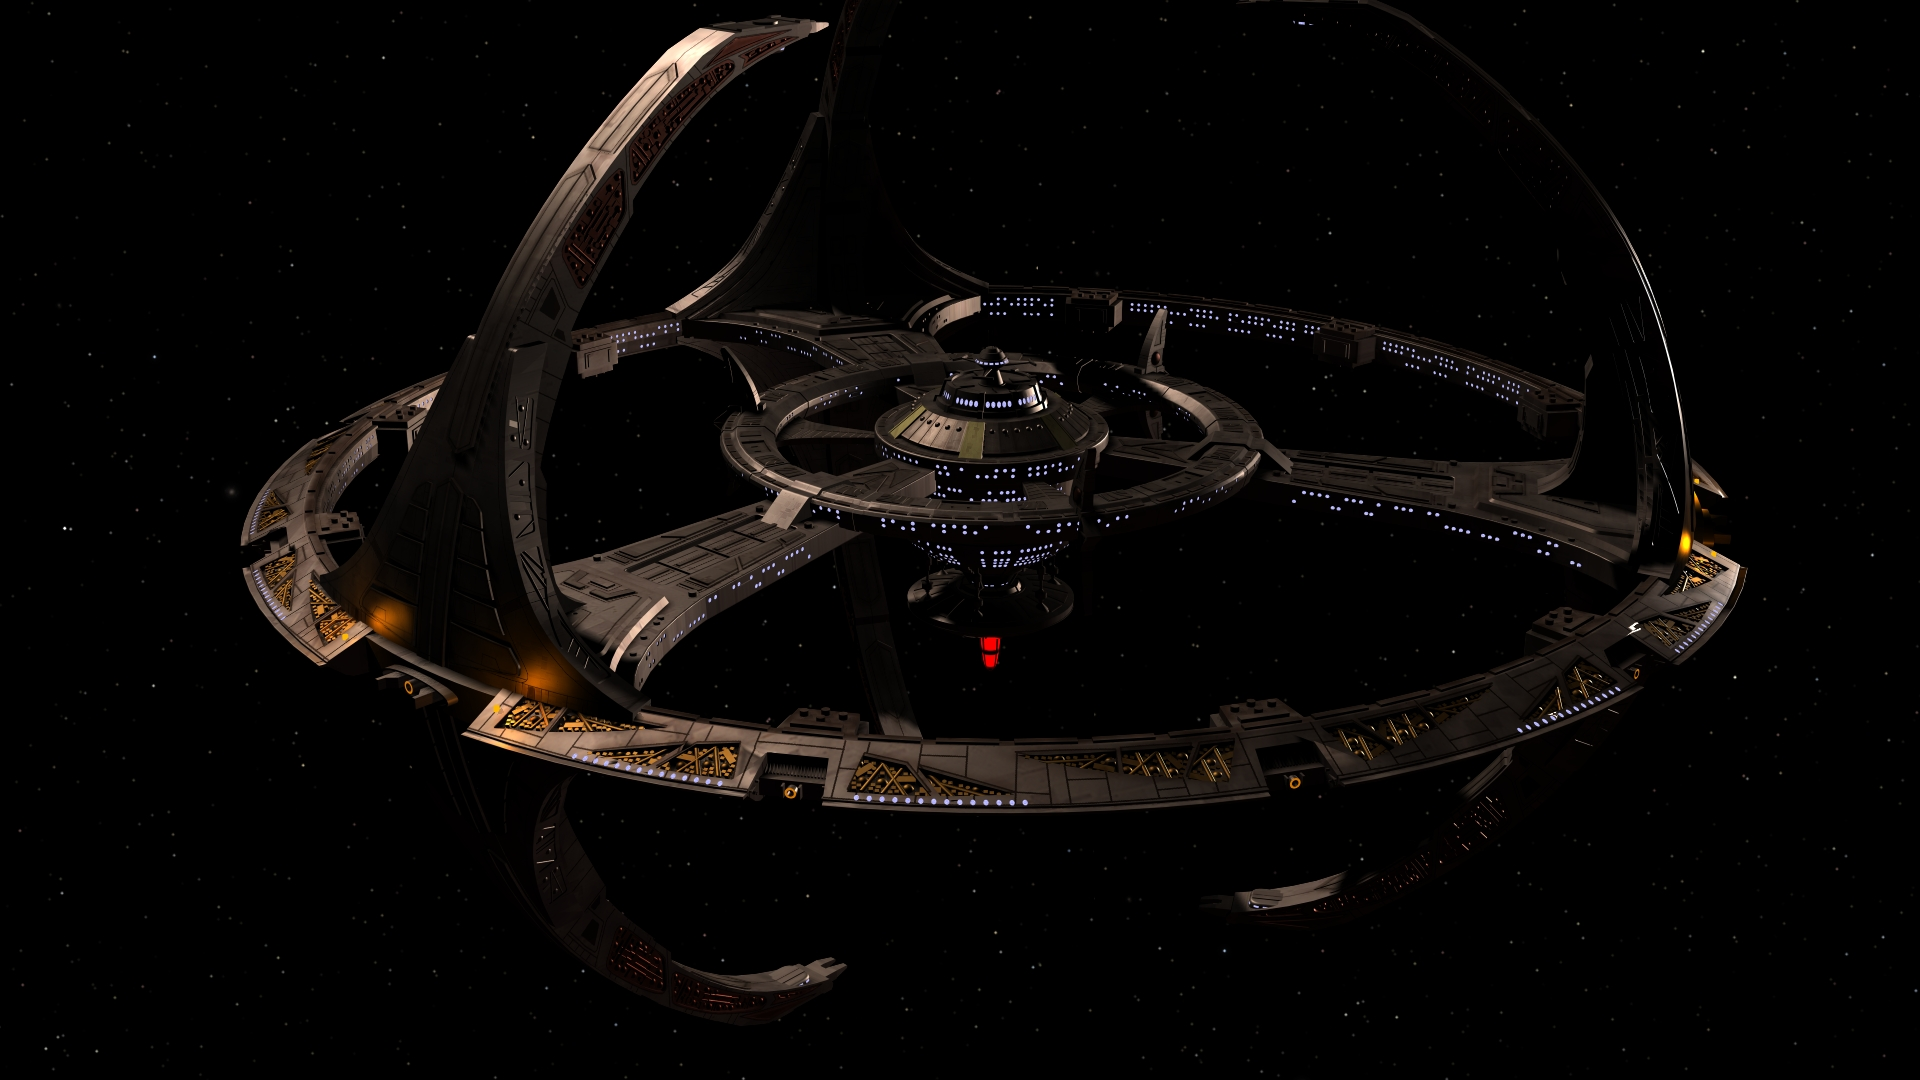 Star Trek Deep Space Nine 20 Years by enterprisedavid 1920x1080